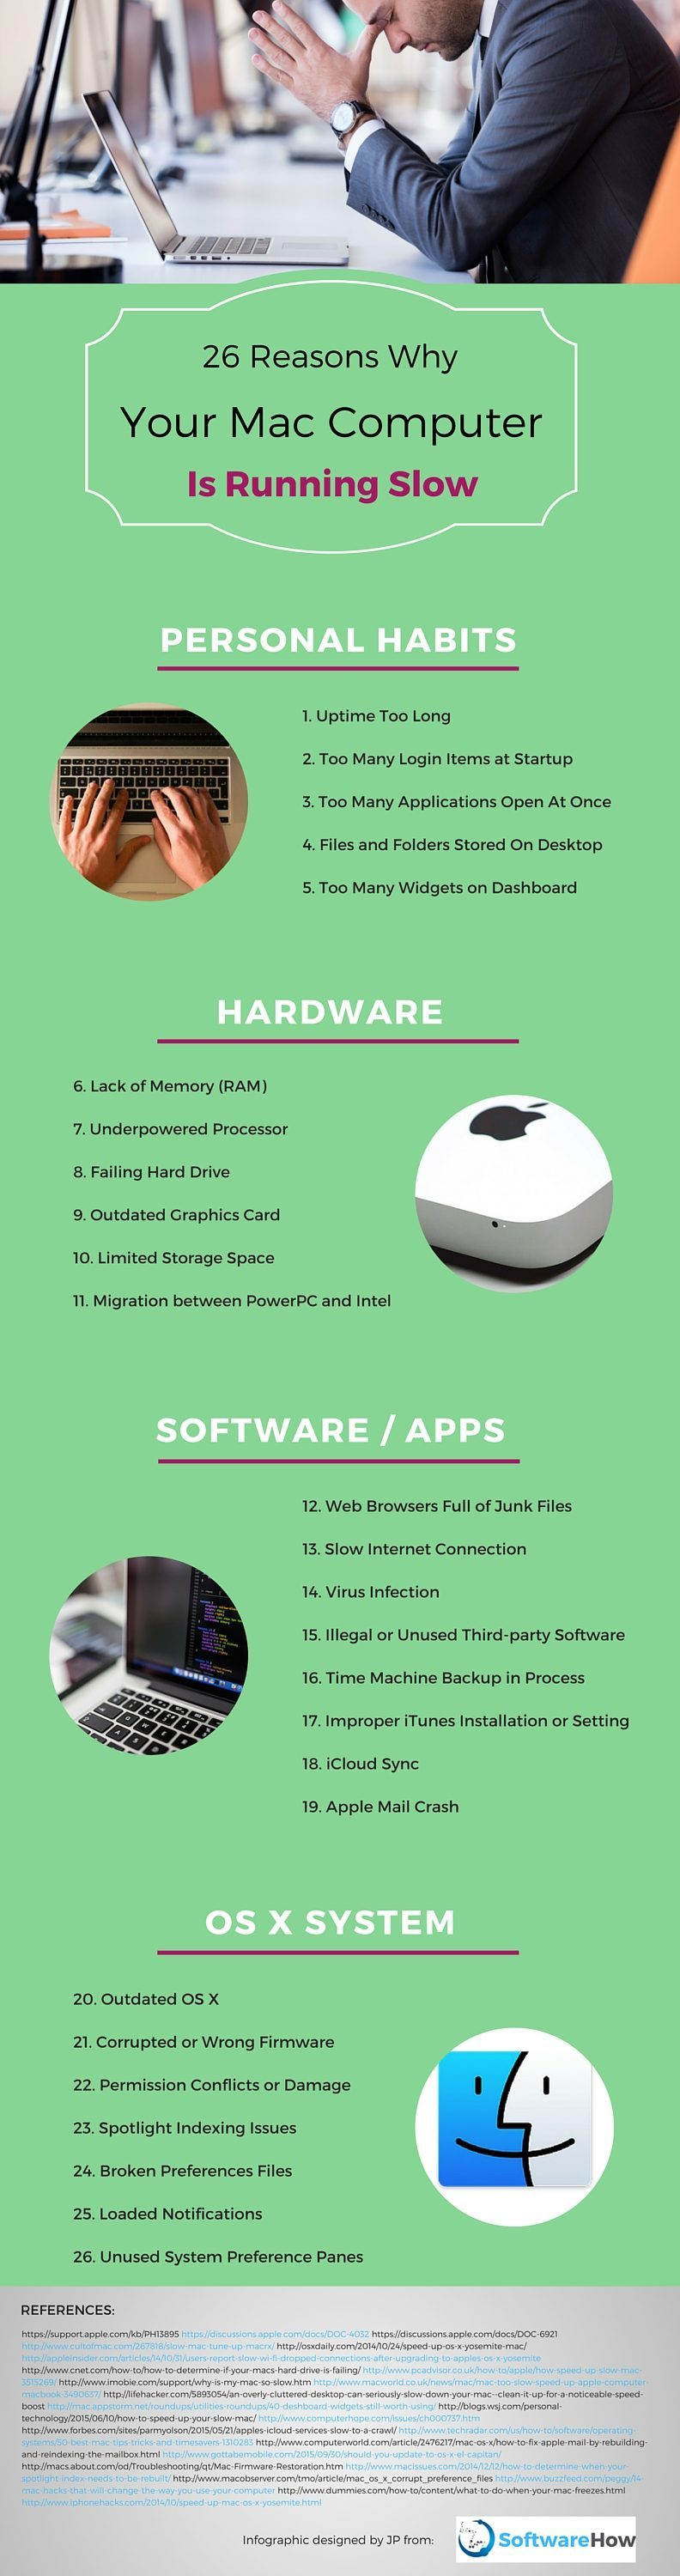 Infographic 26 Reasons Why Mac Slow